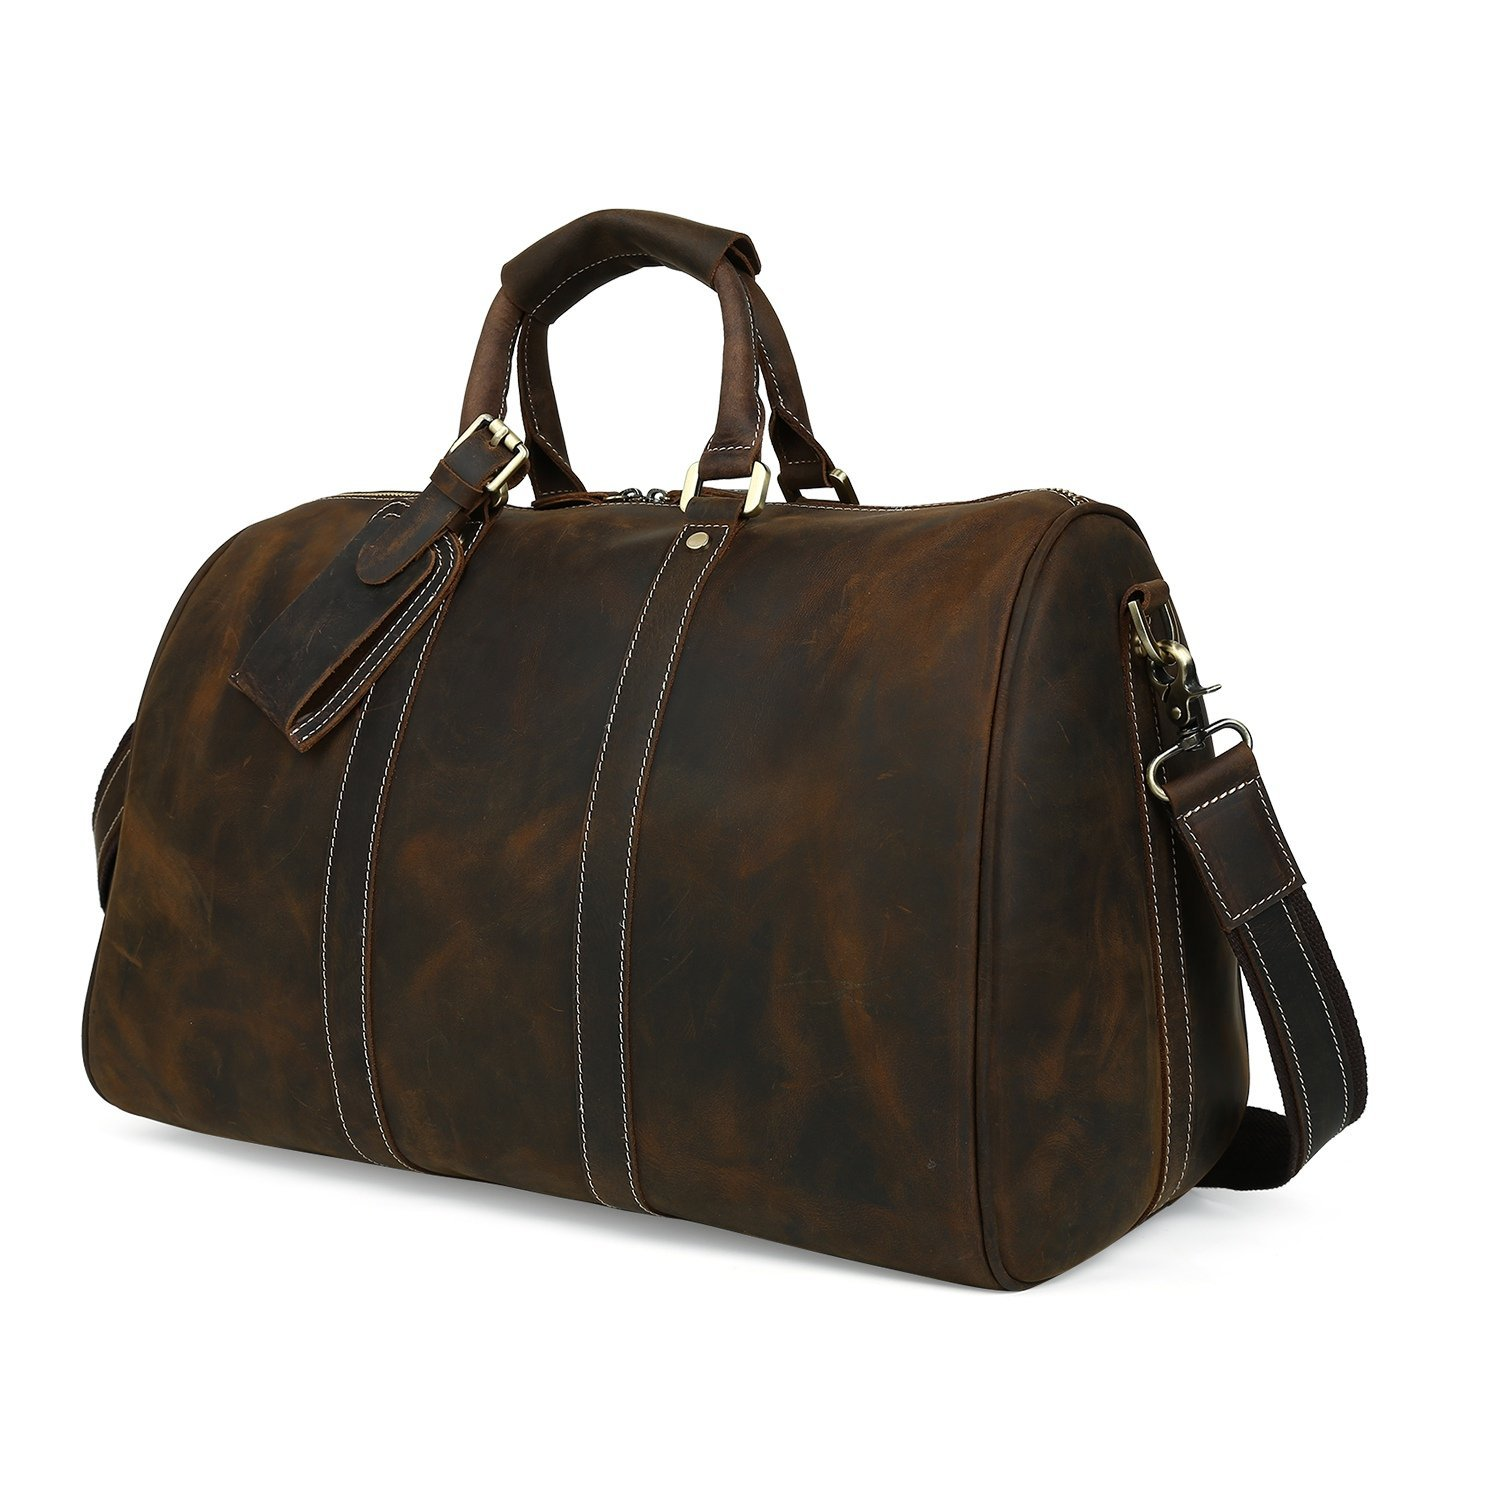 SUNVP Mens Crazy Horse Leather Duffle Bag Vintage Overnight Tote Crossbody Bags